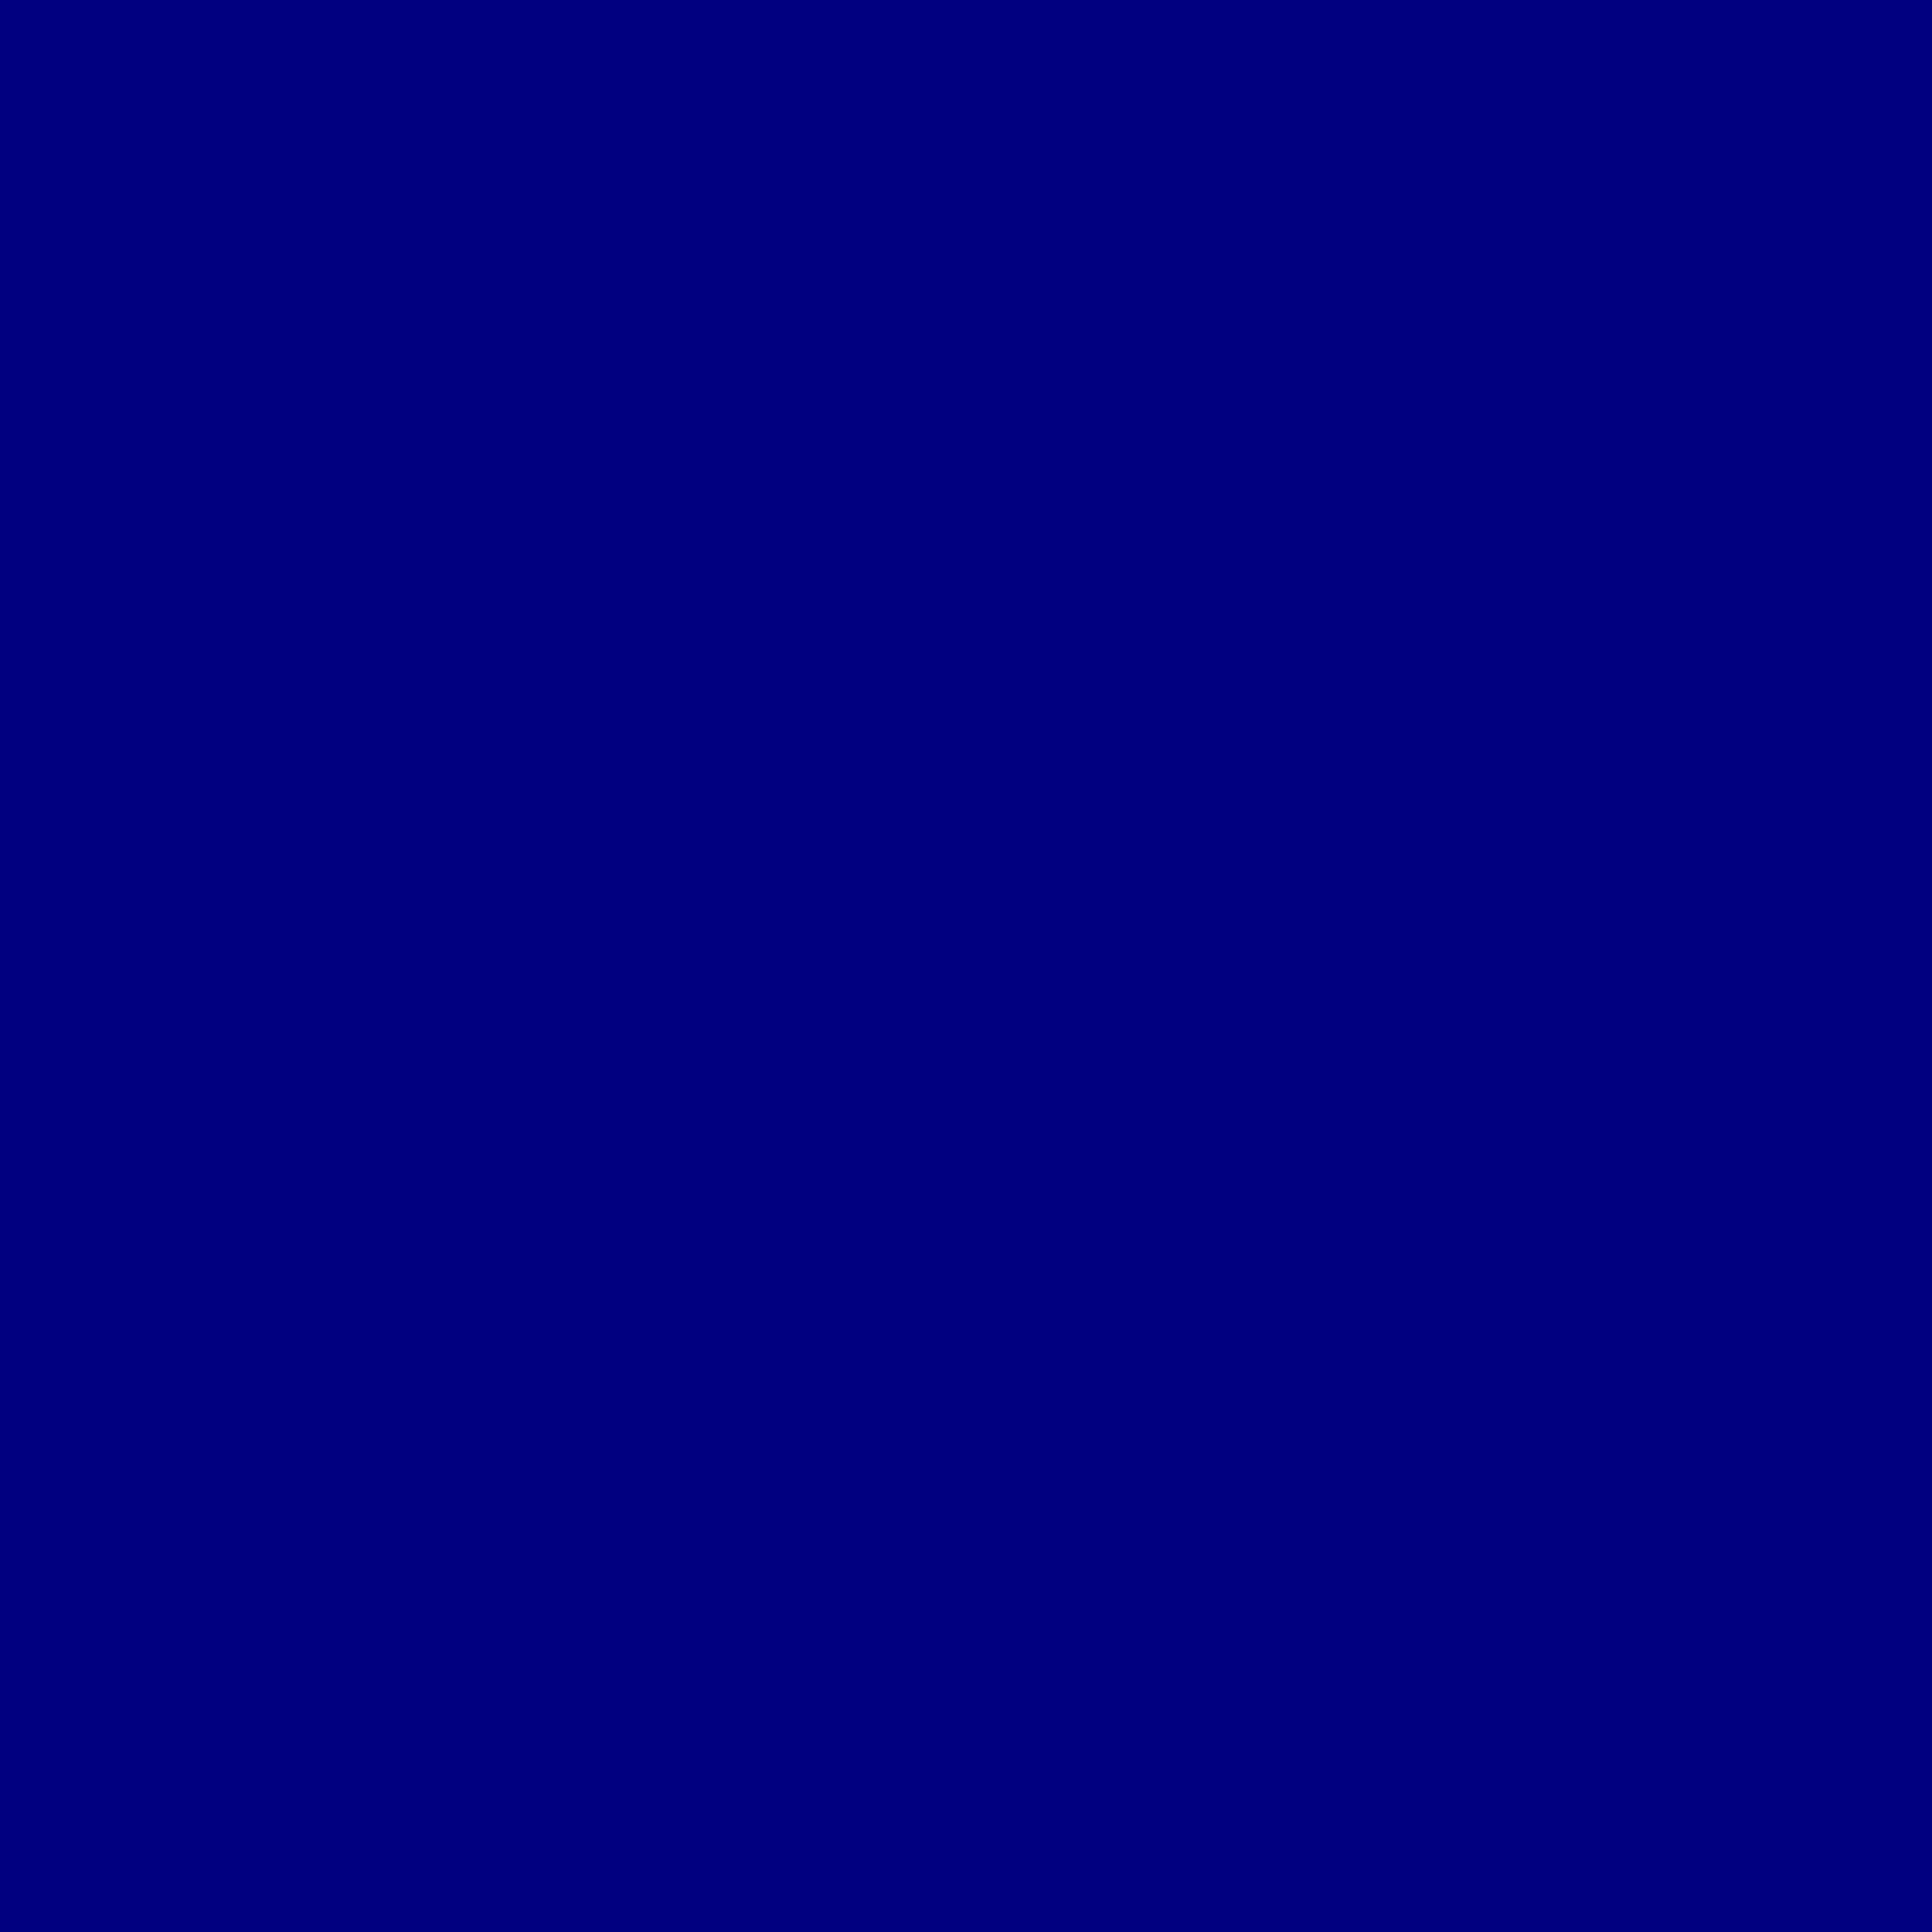 2048x2048 Navy Blue Solid Color Background